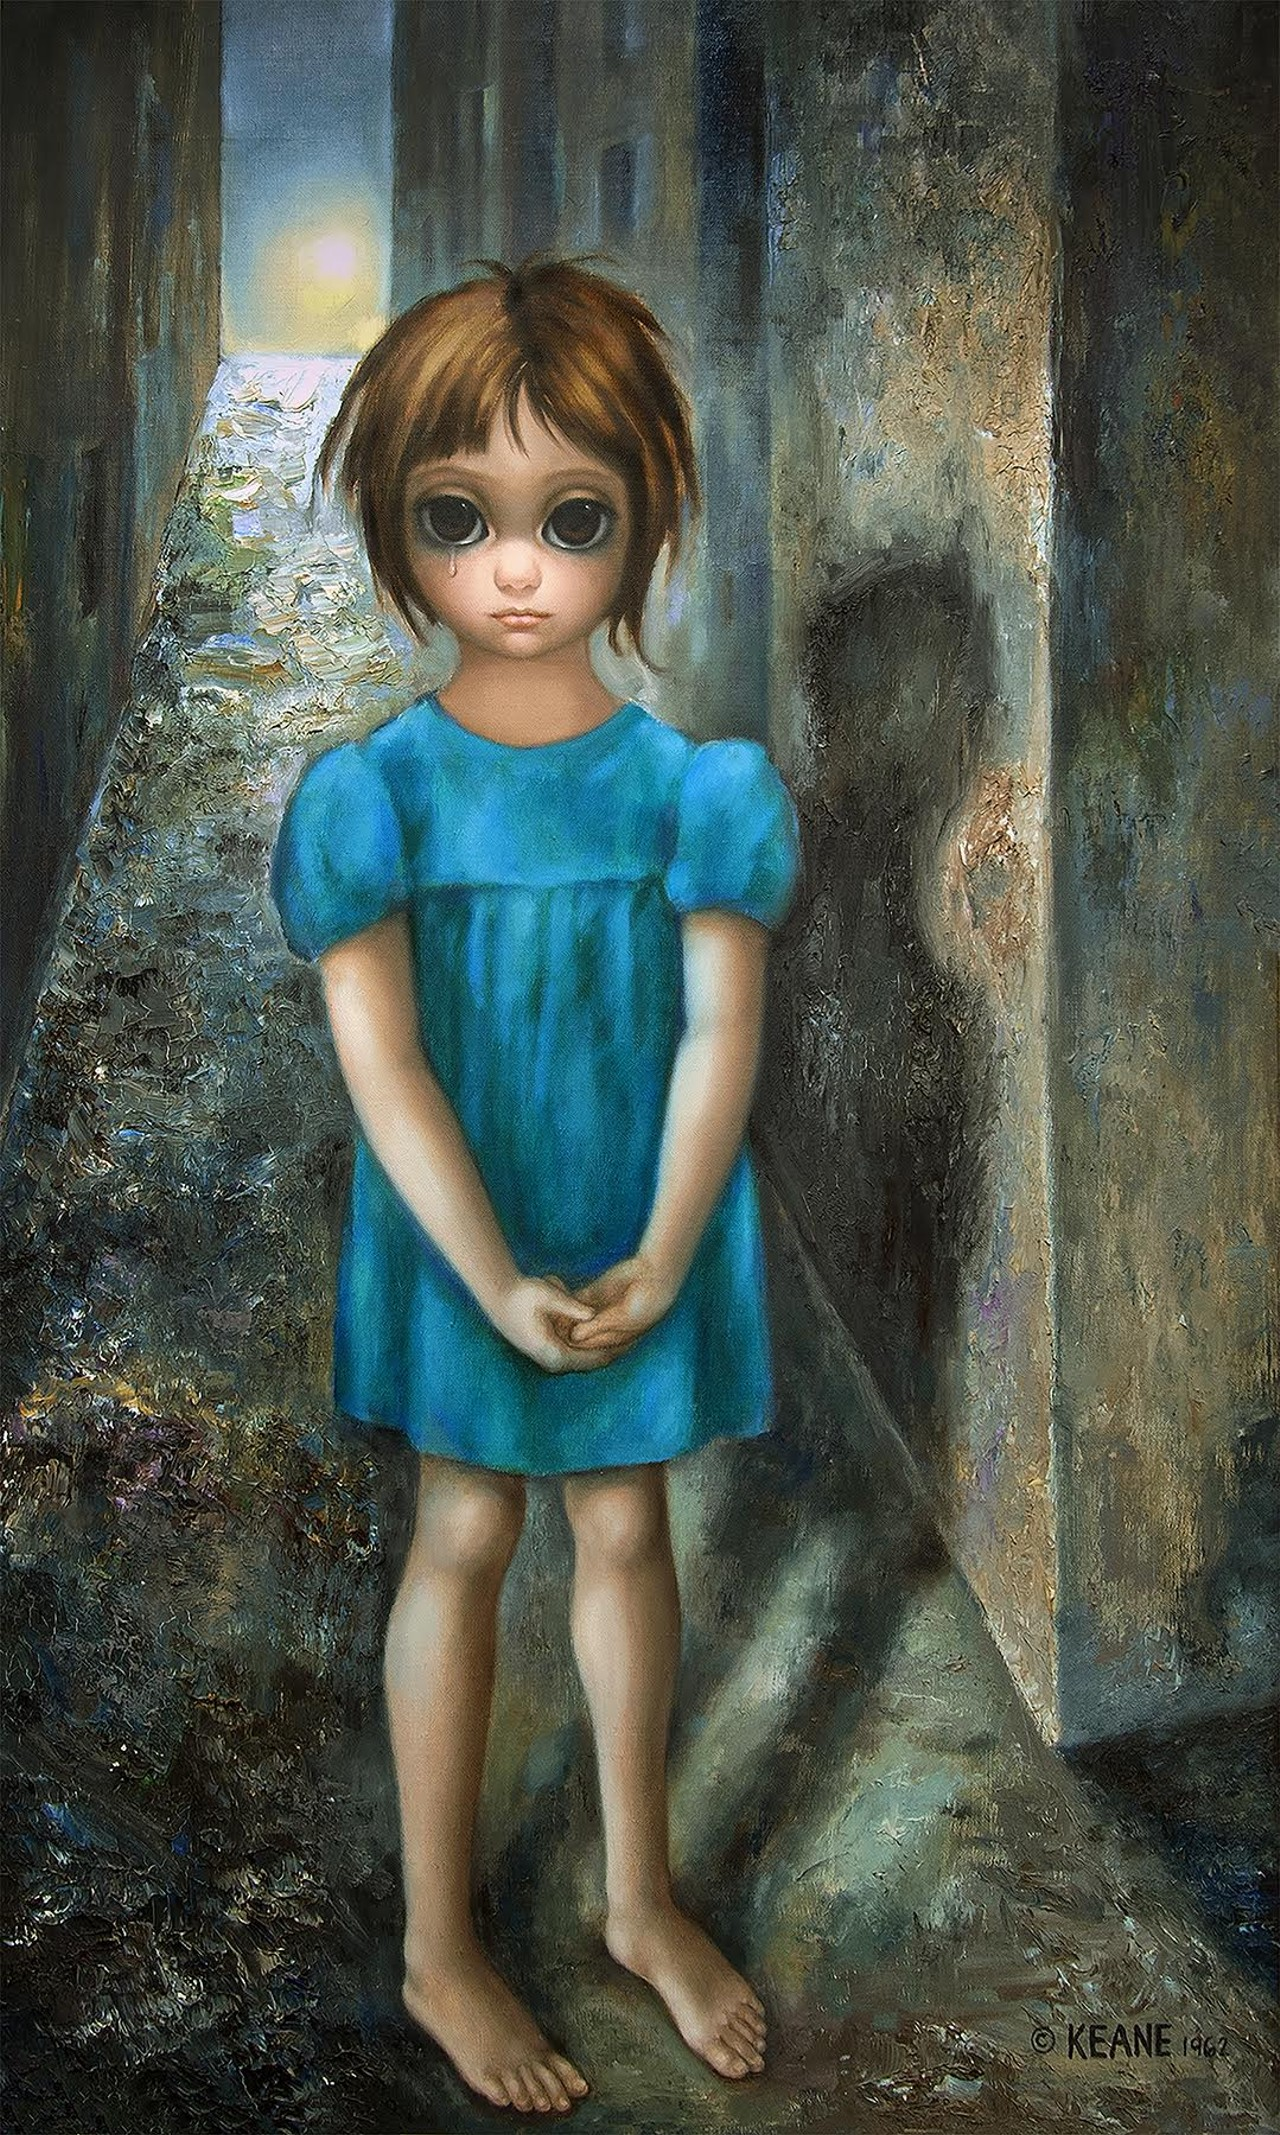 eying a legacy margaret keane s paintings made famous in tim